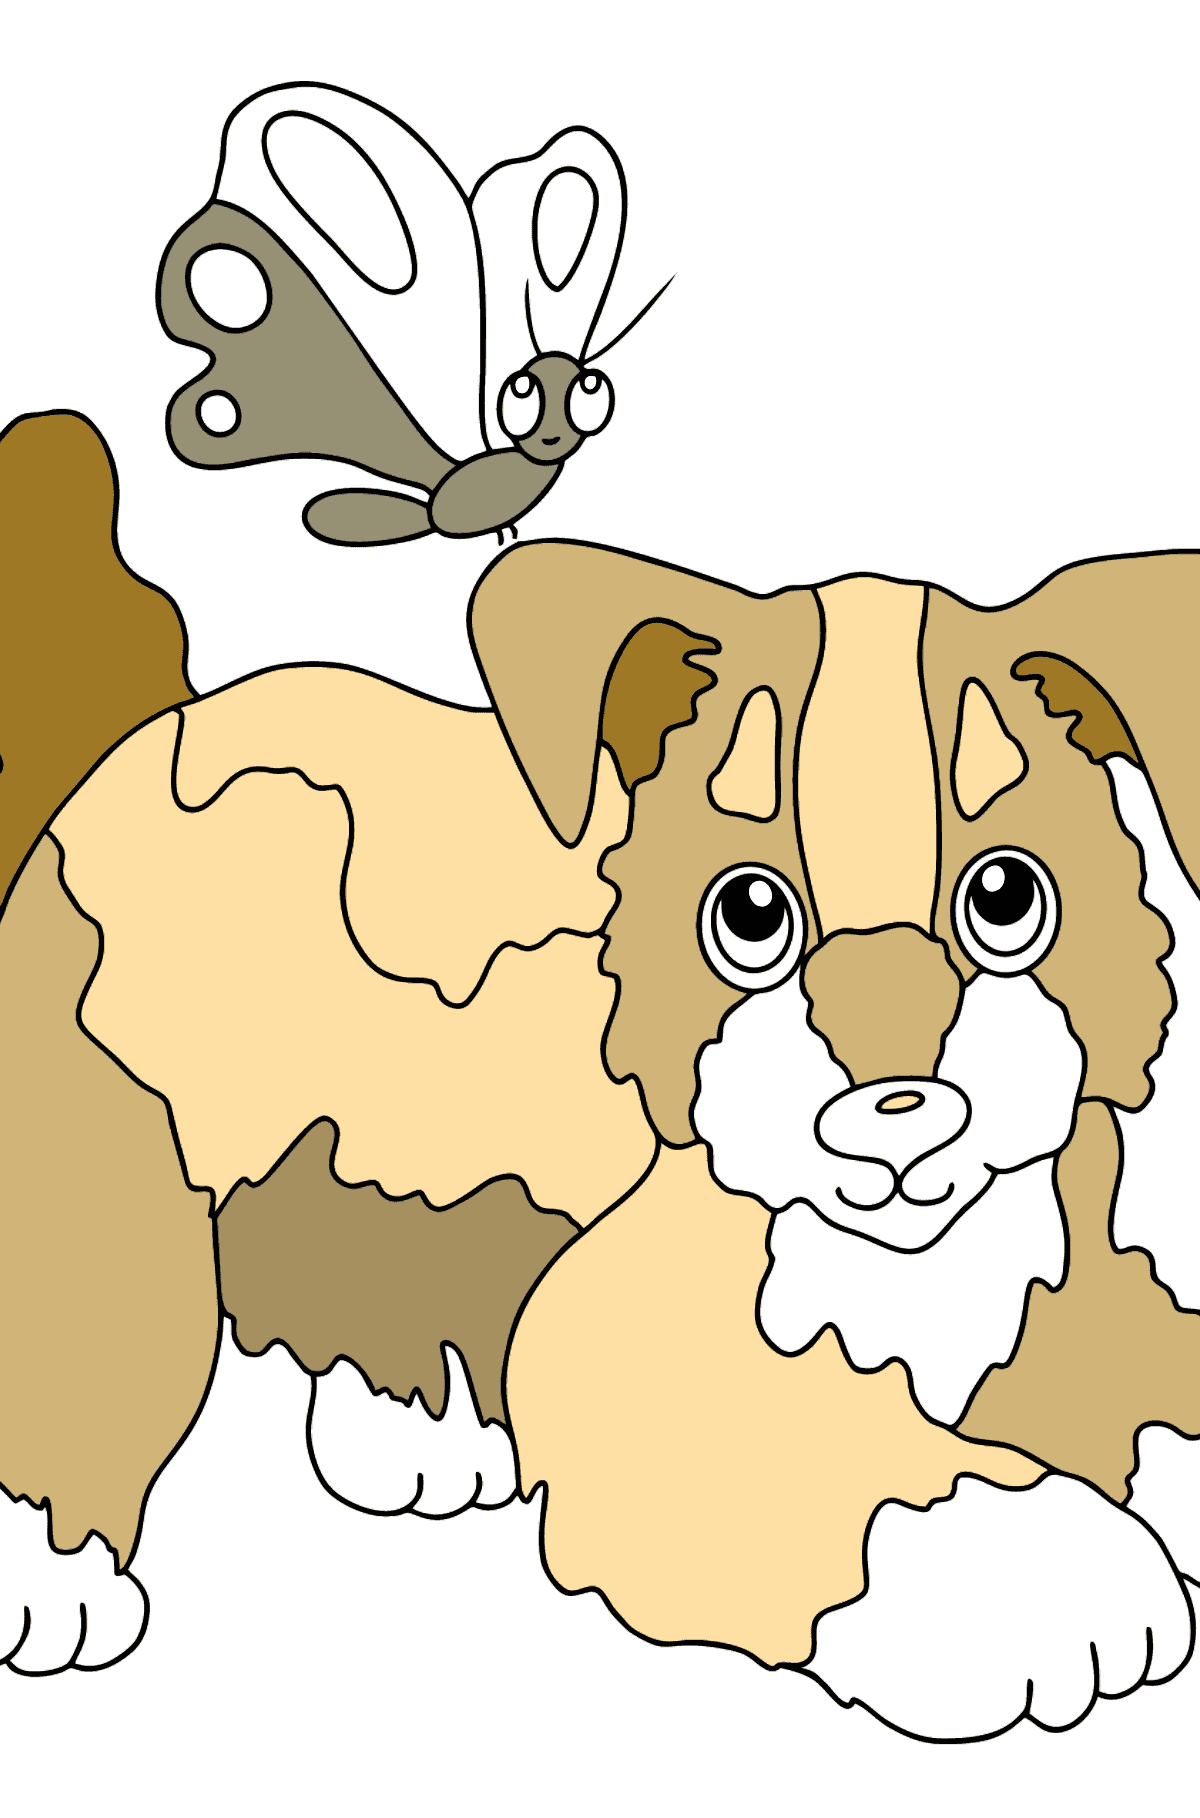 Coloring Page - A Dog is Playing with a Beautiful Butterfly - Coloring Pages for Kids